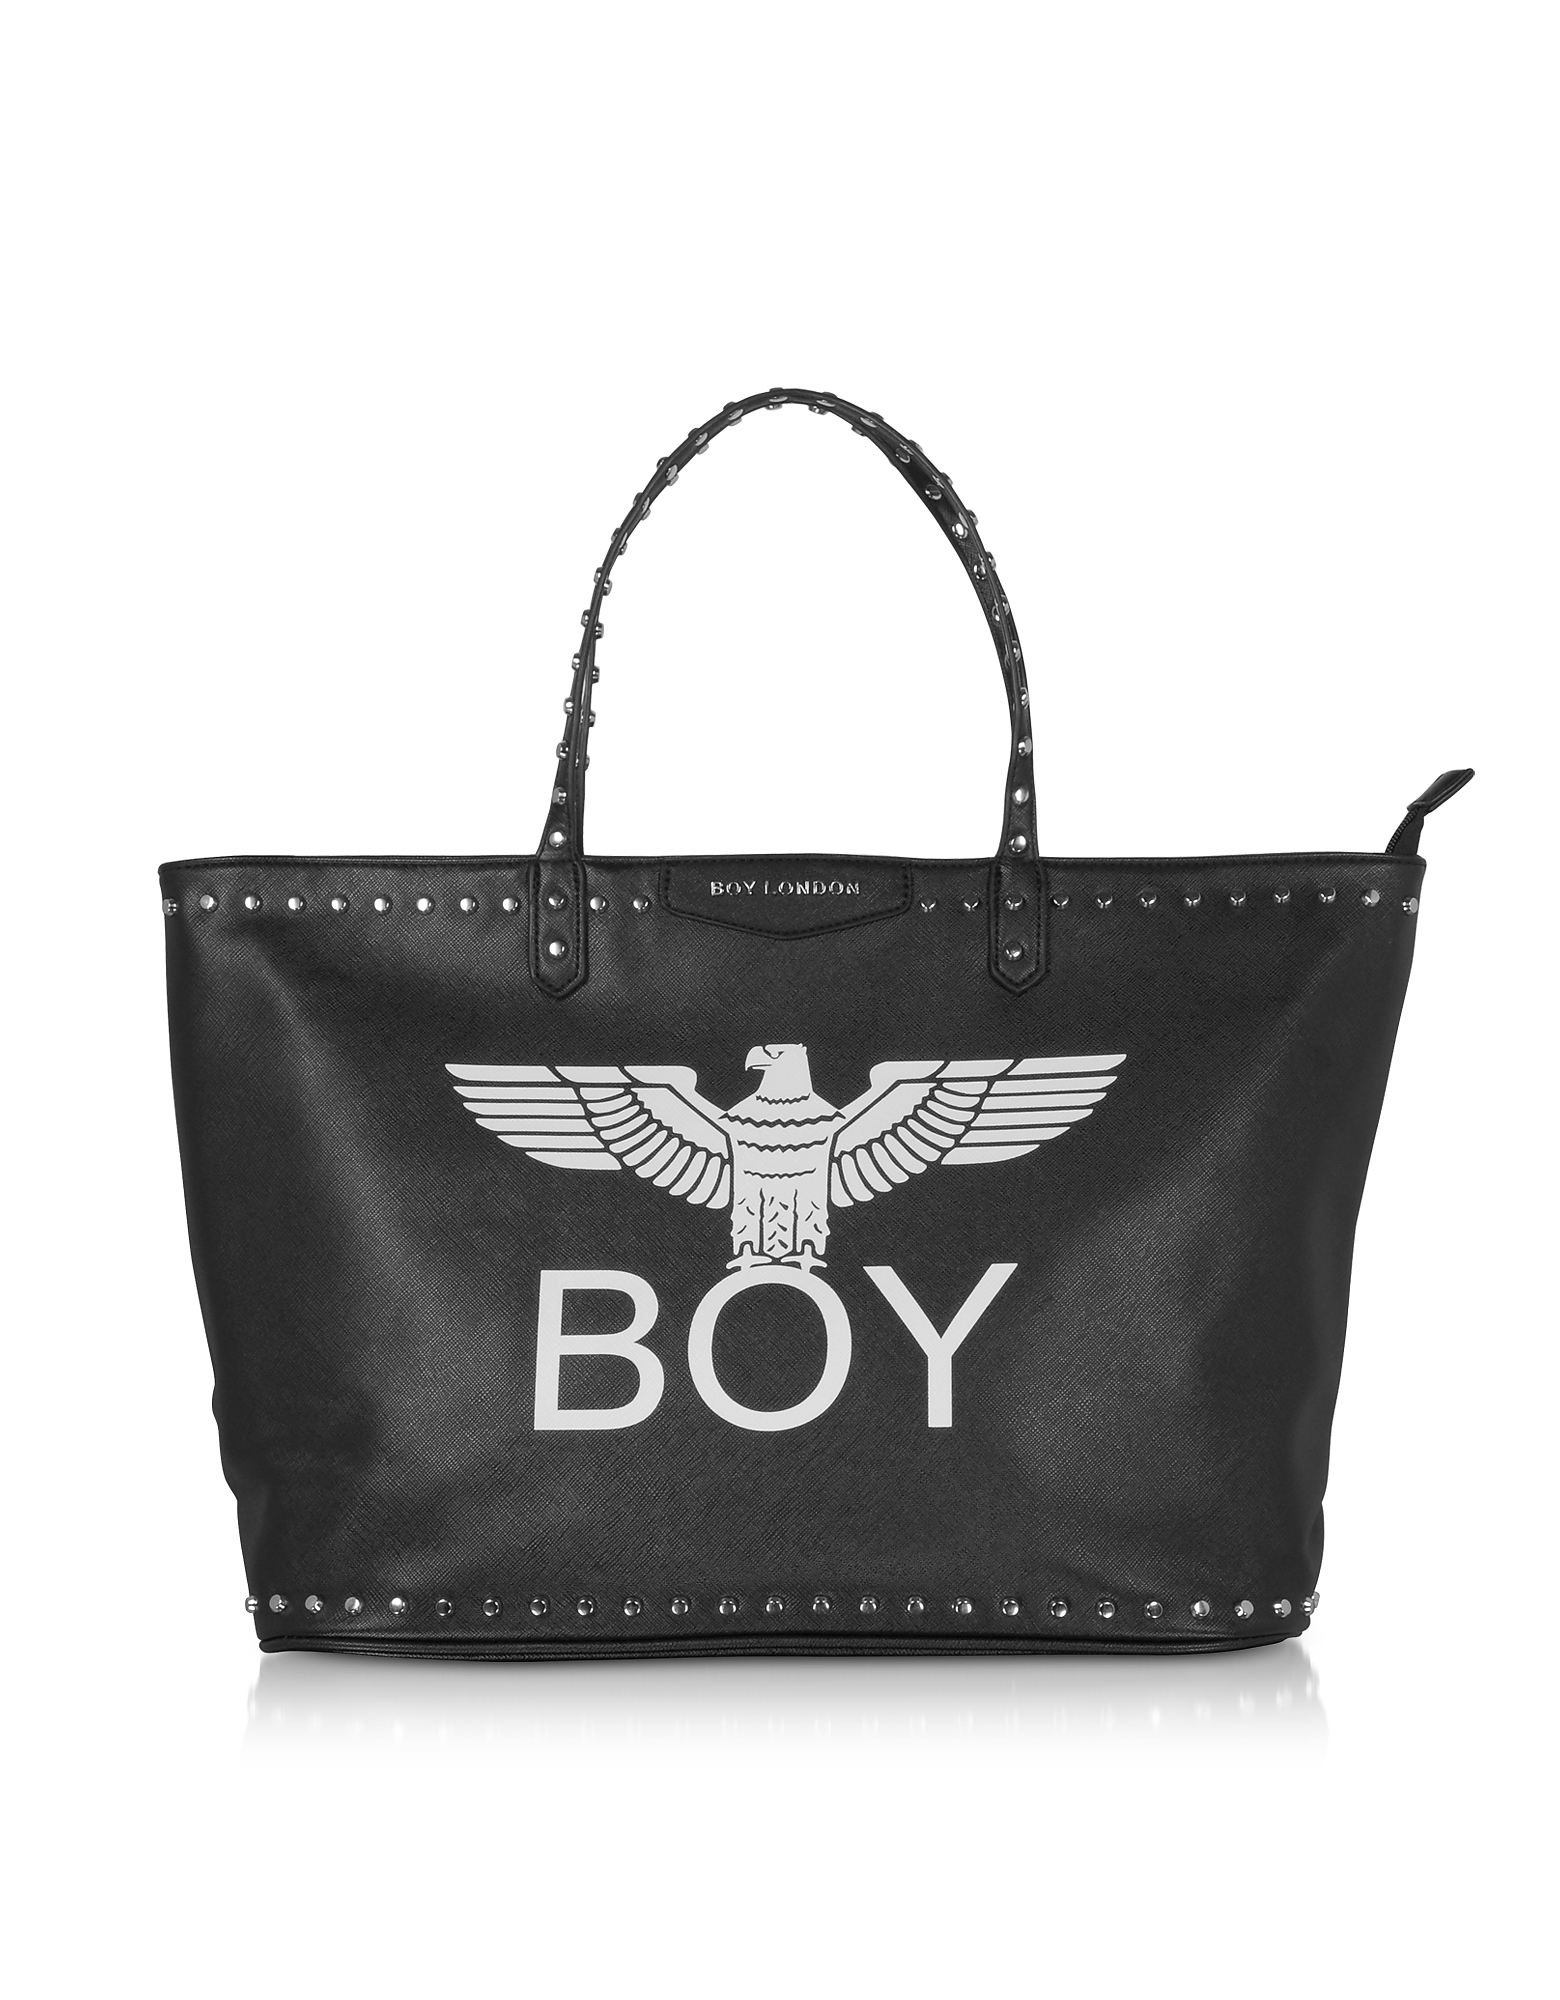 BOY London Designer Handbags, Black Synthetic Leather Tote Bag